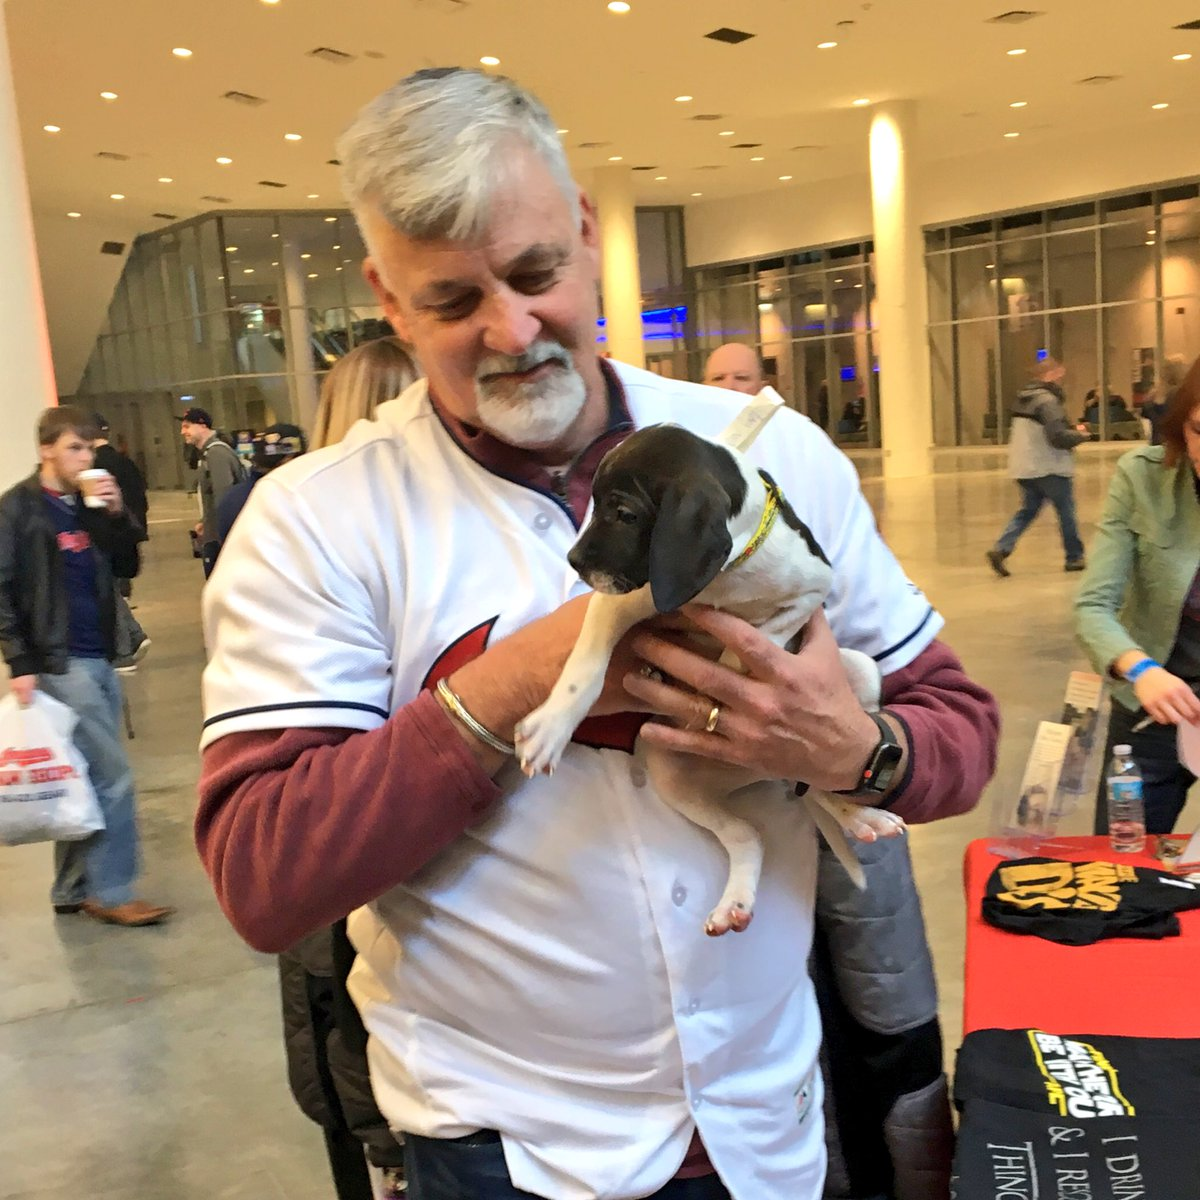 Indians pitching coach Carl Willis loves the puppies. #TribeFest https://t.co/qNA1MrF7o0